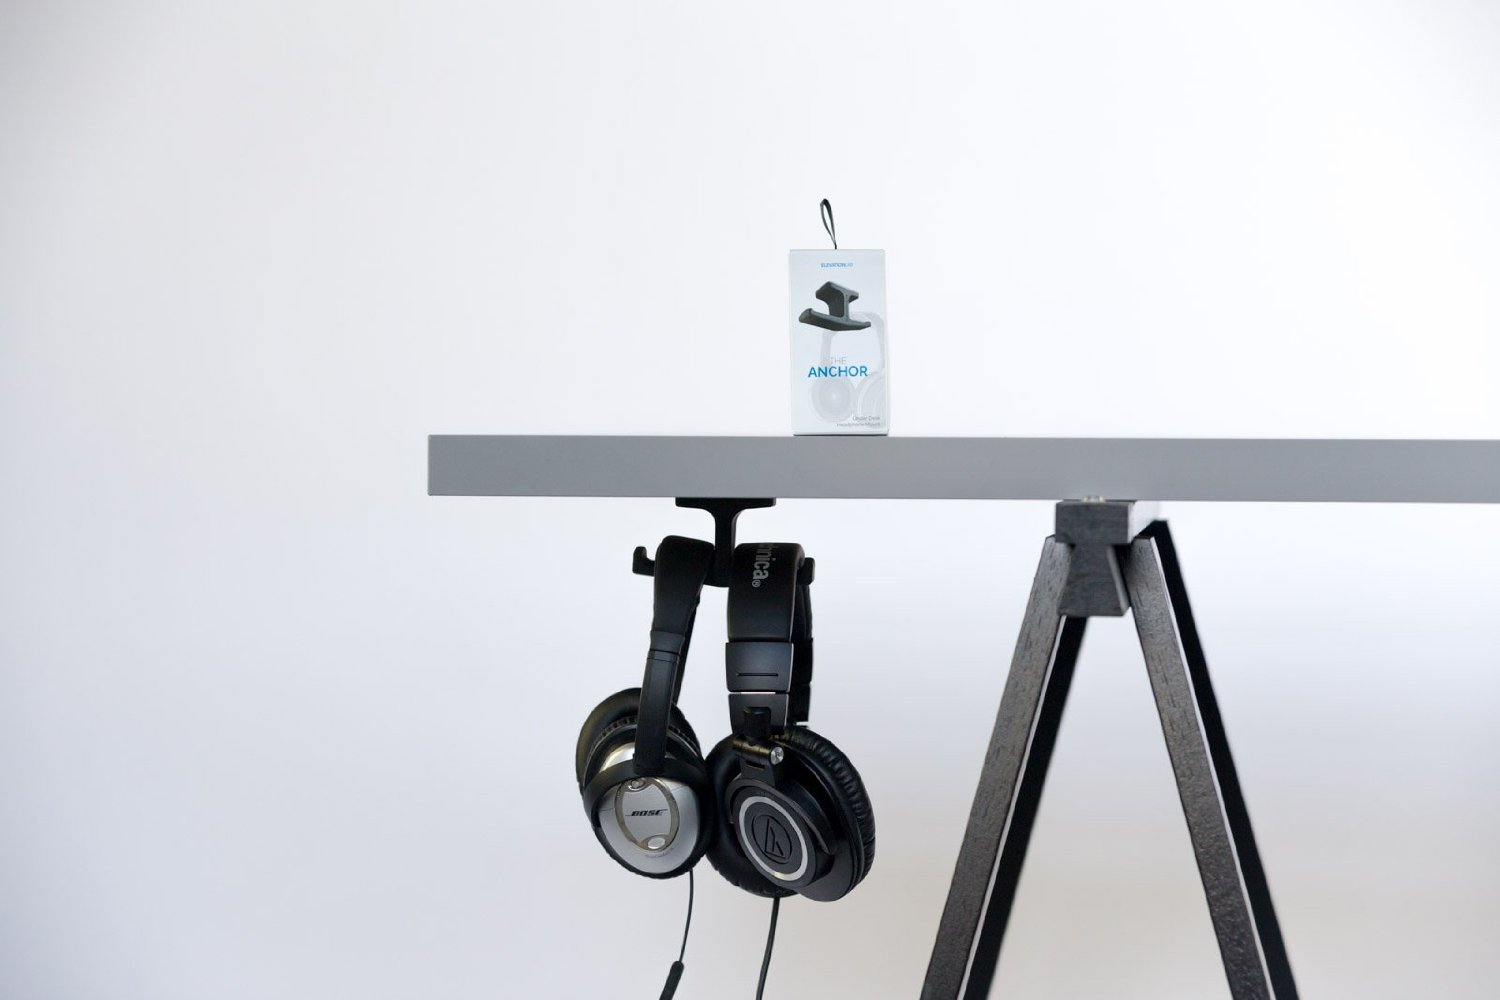 http://audiophilereview.com/images/anchorstand.jpg